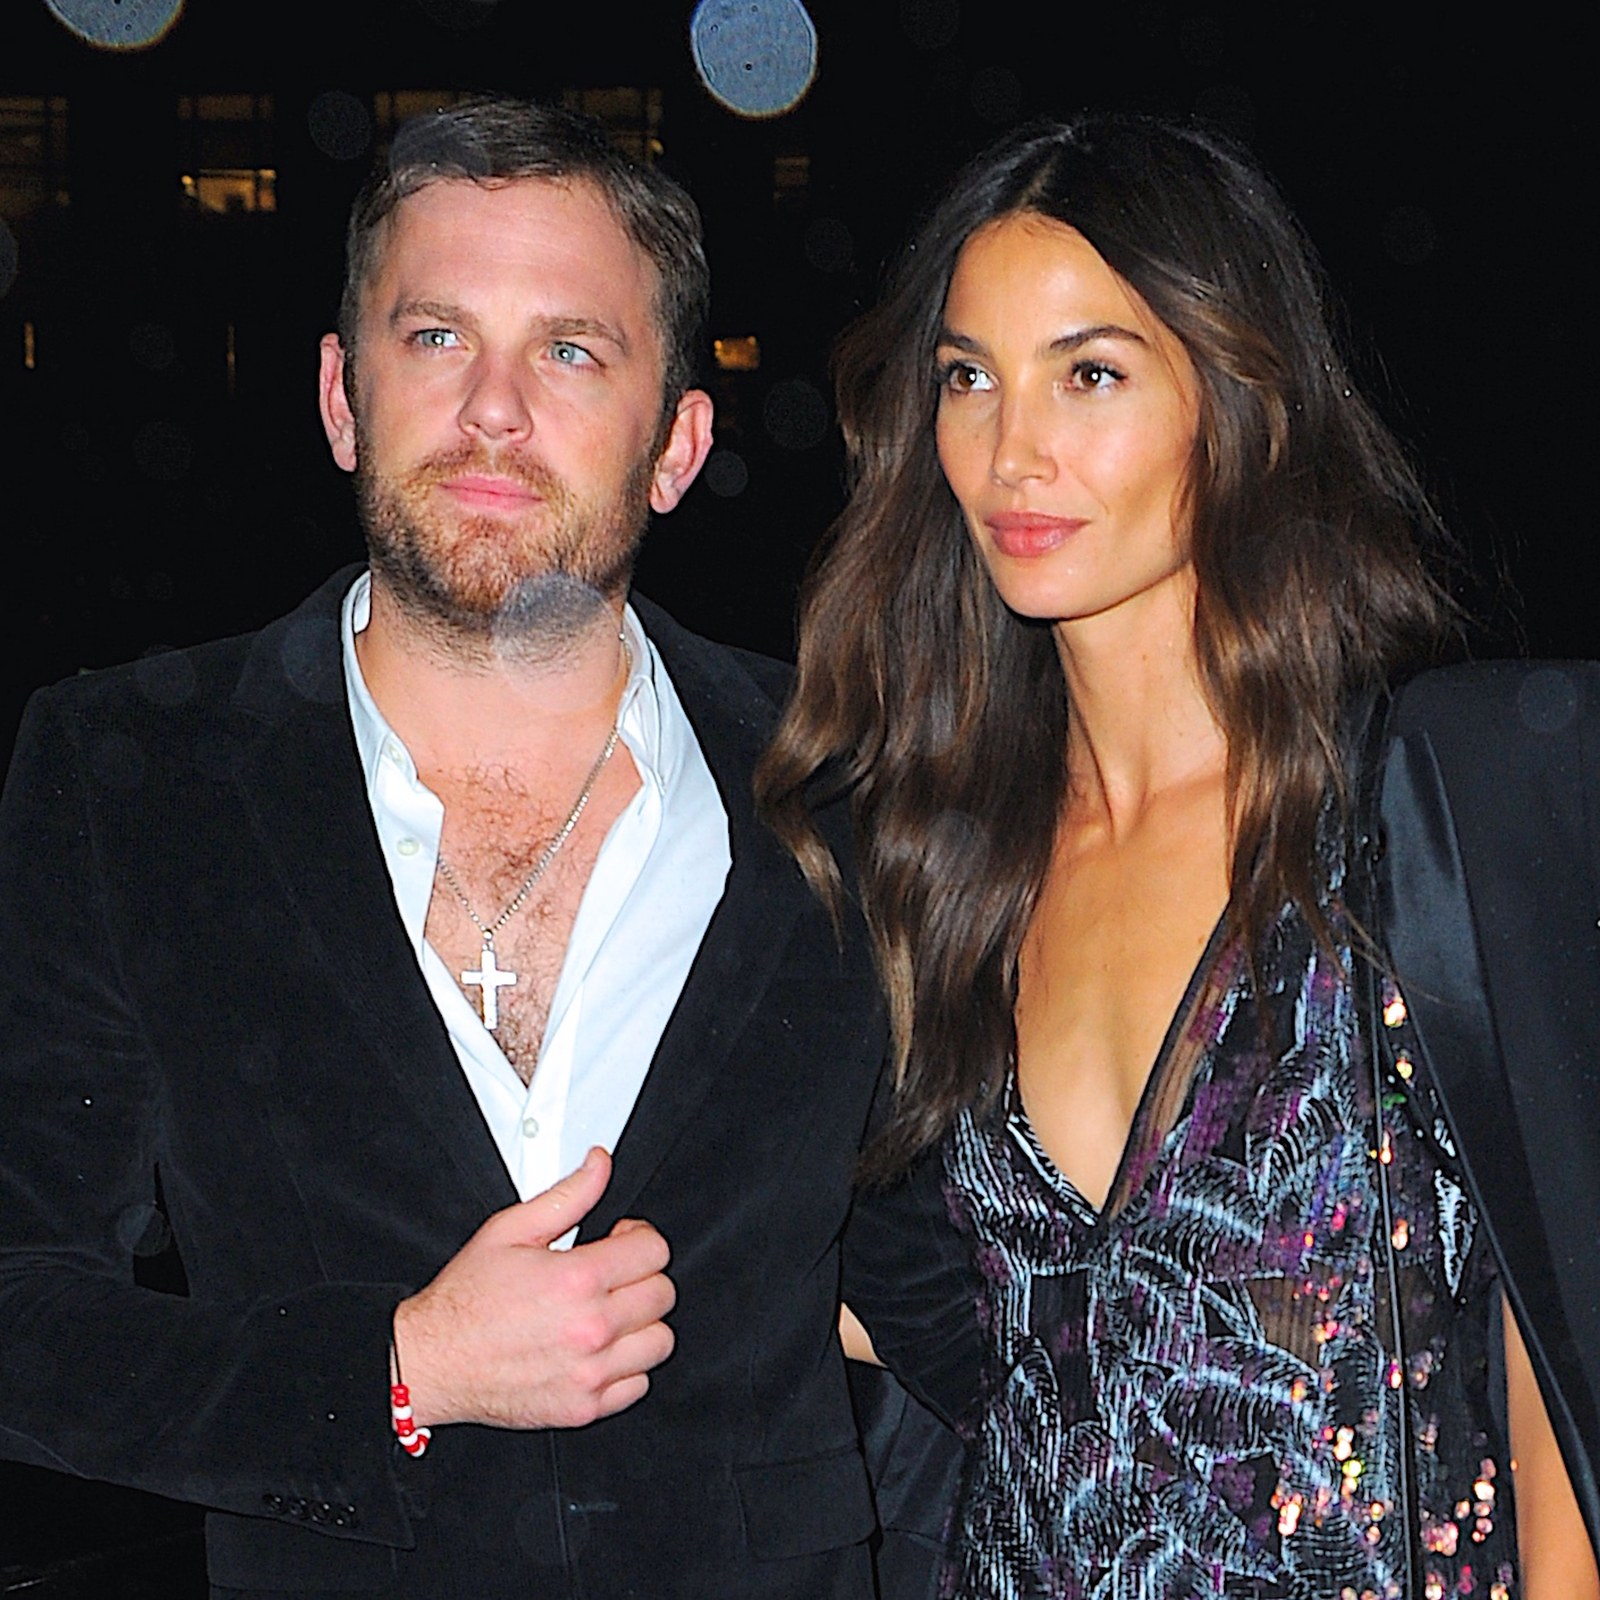 Lily Aldridge and husband Caleb Followill attend a party.